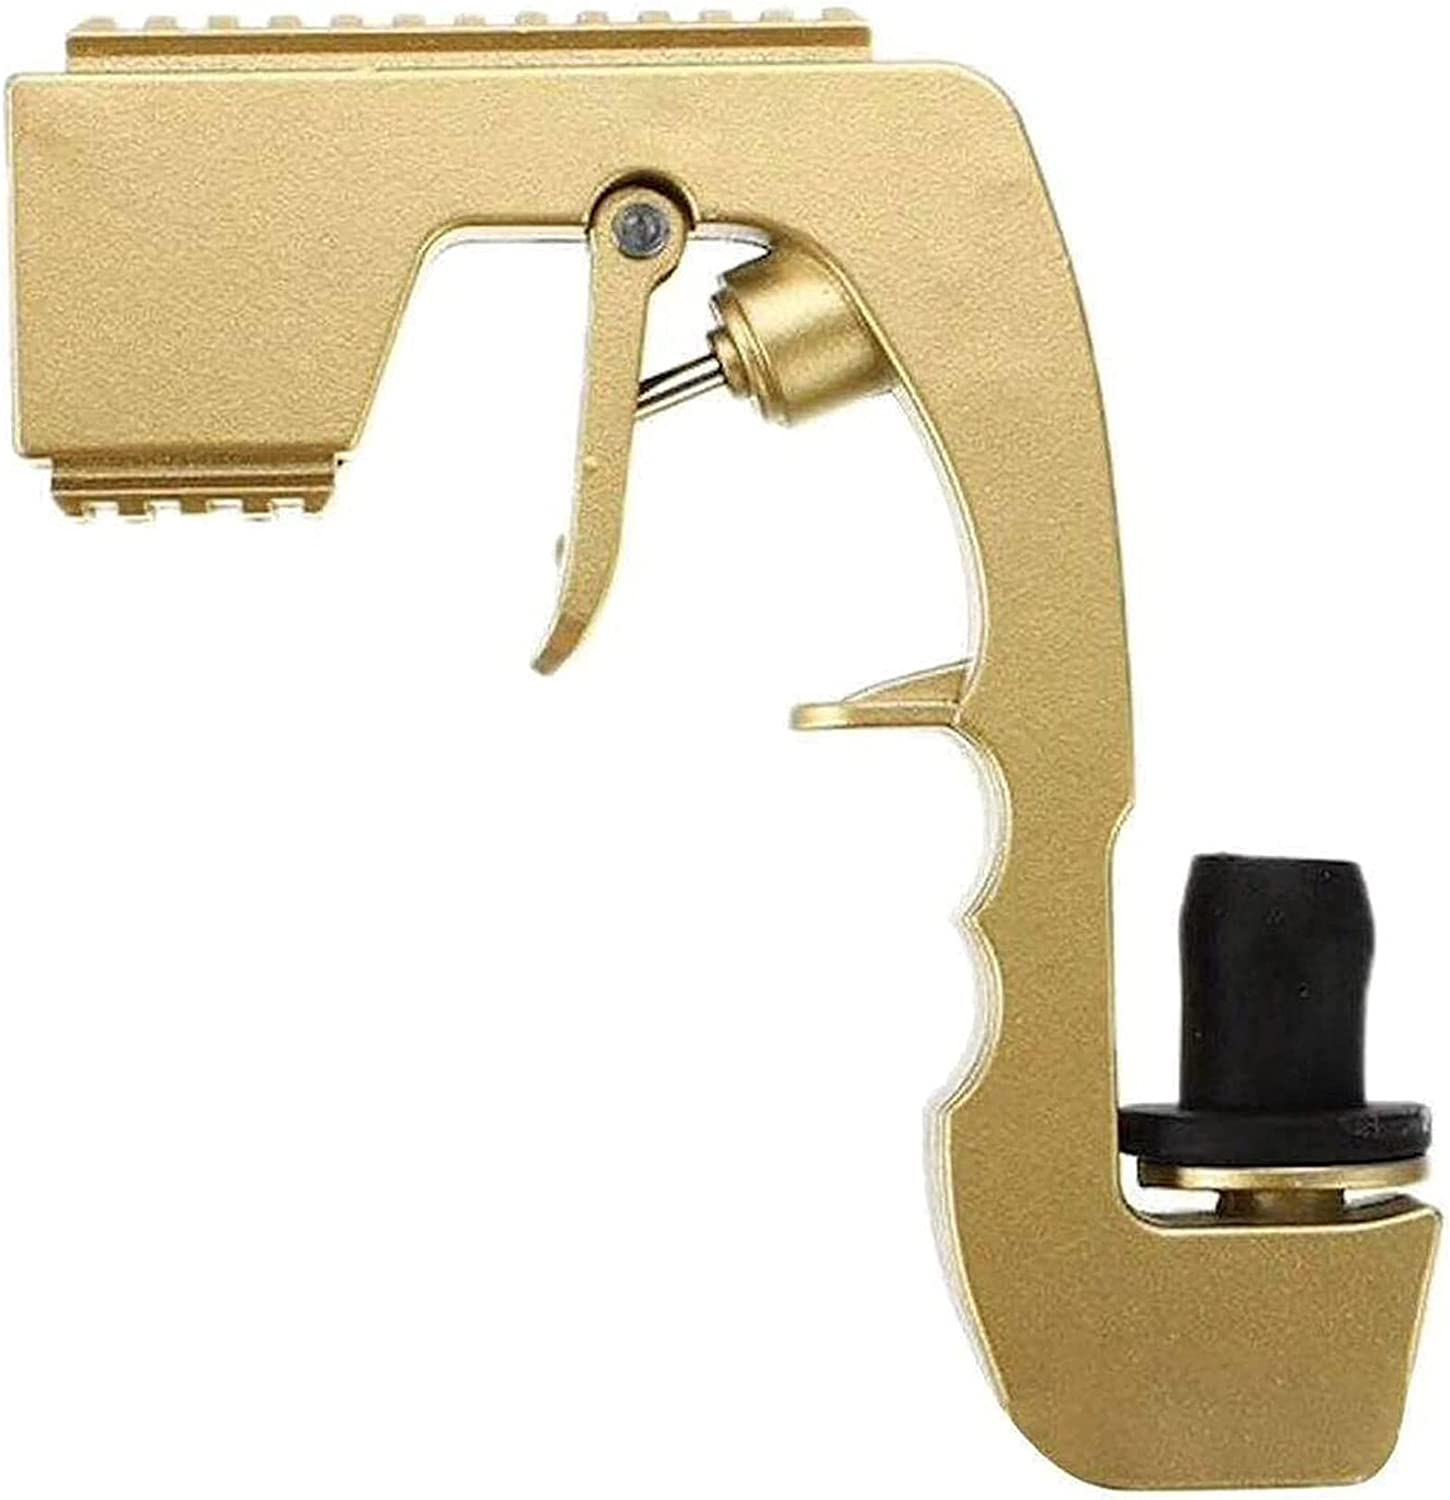 Champagne Gun Shooter Max 48% OFF Wine Stopper New Free Shipping Dispenser Wi